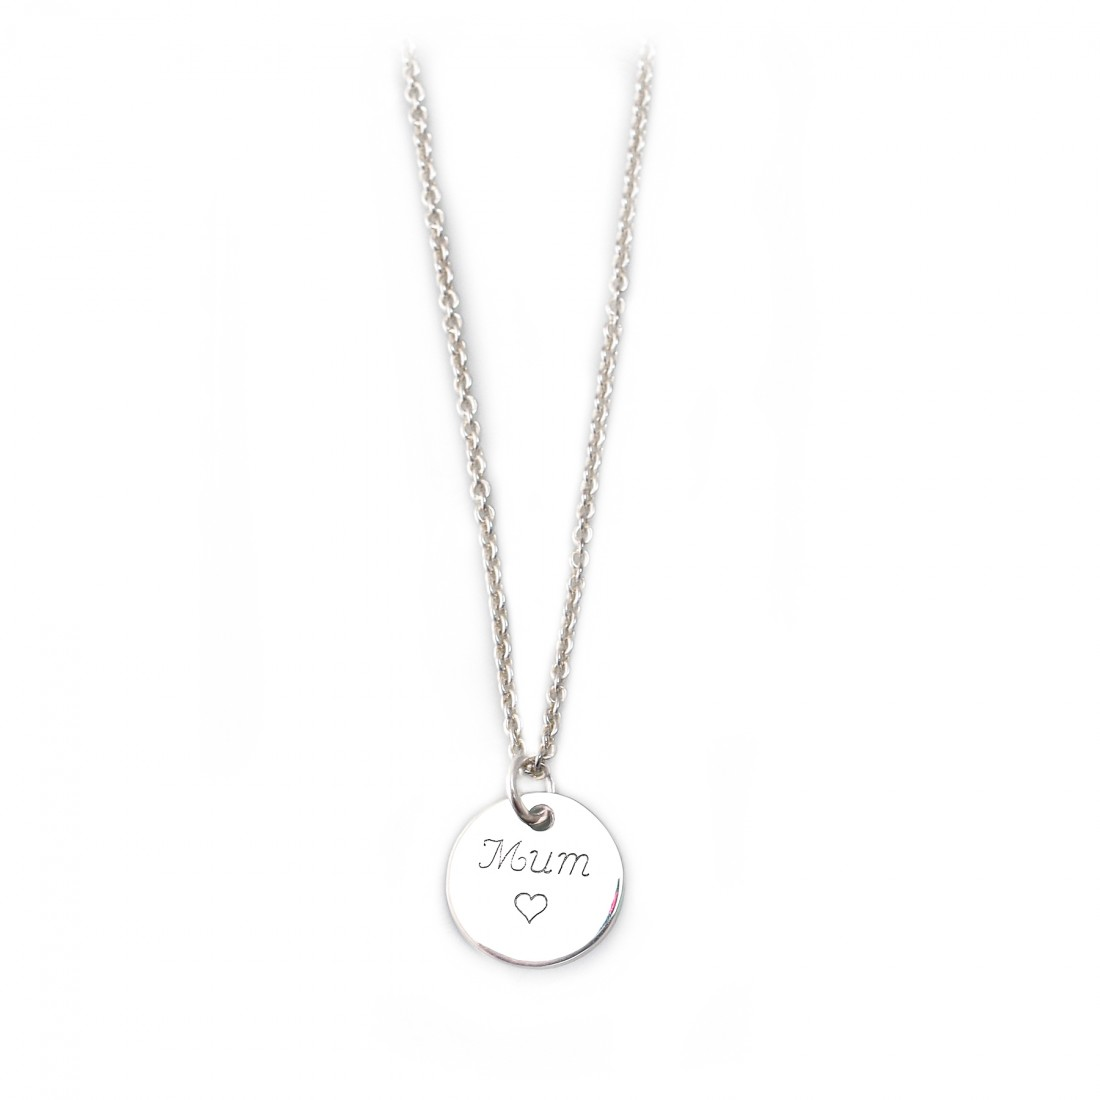 Exclusive Sterling Silver 'Mum' Necklace